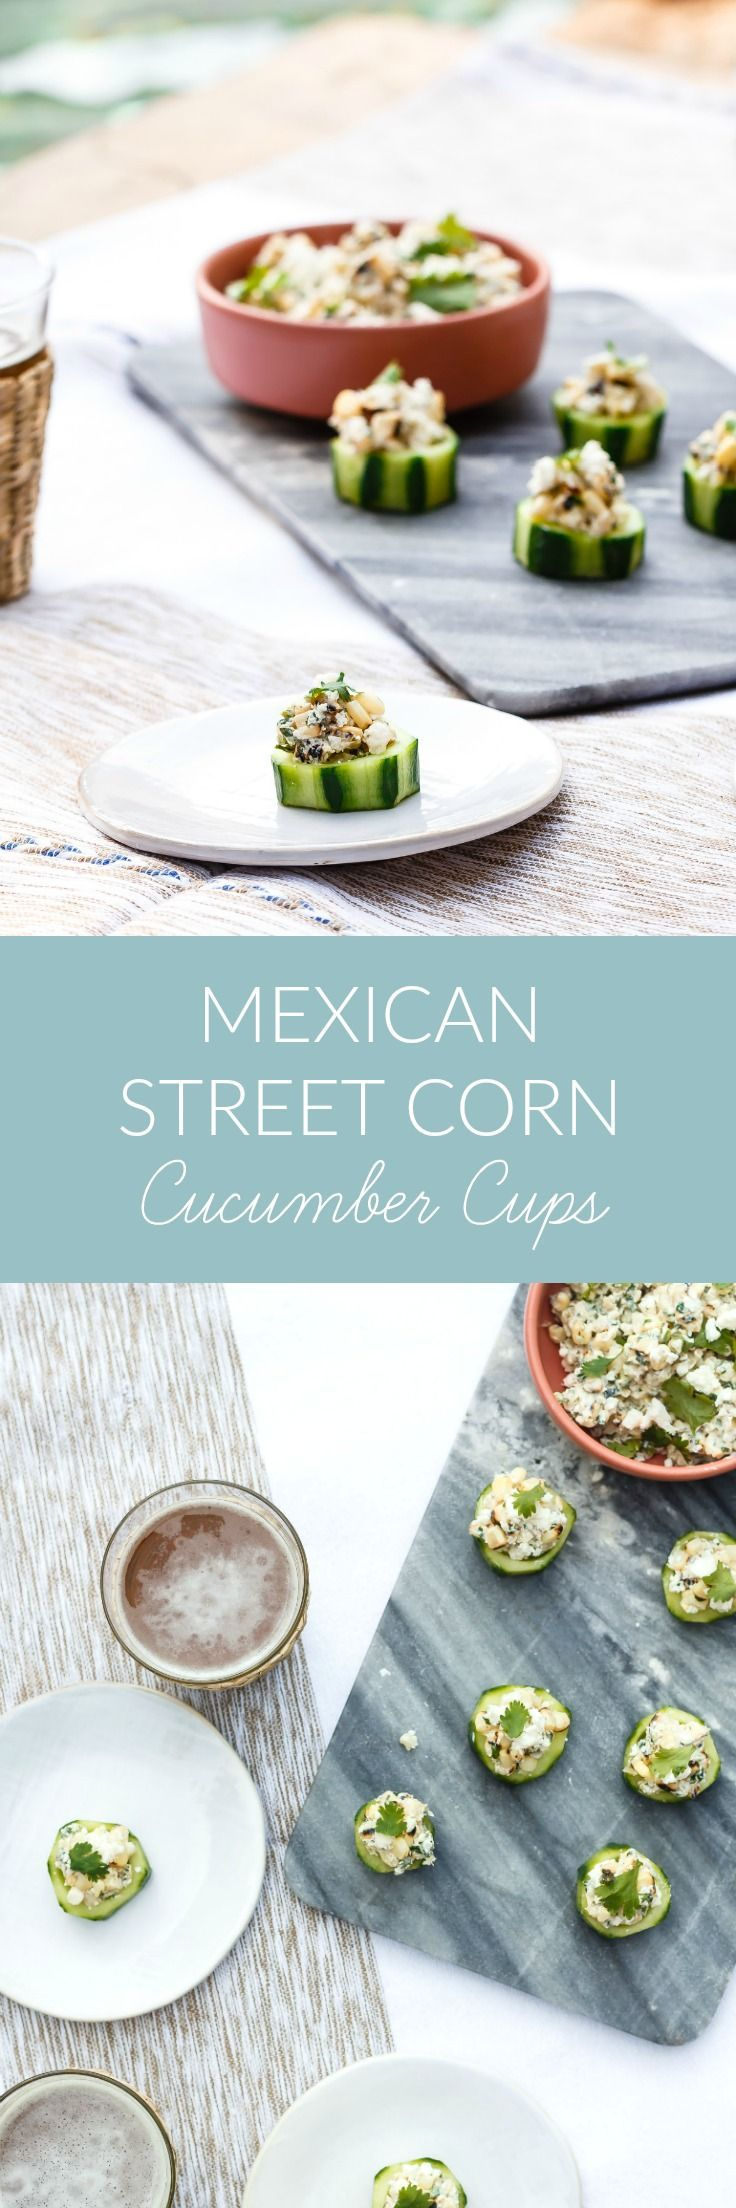 Enjoy a daintier riff on street food with these Mexican Street Corn Cucumber Cups, a light summer appetizer and the perfect poolside snacking provision.